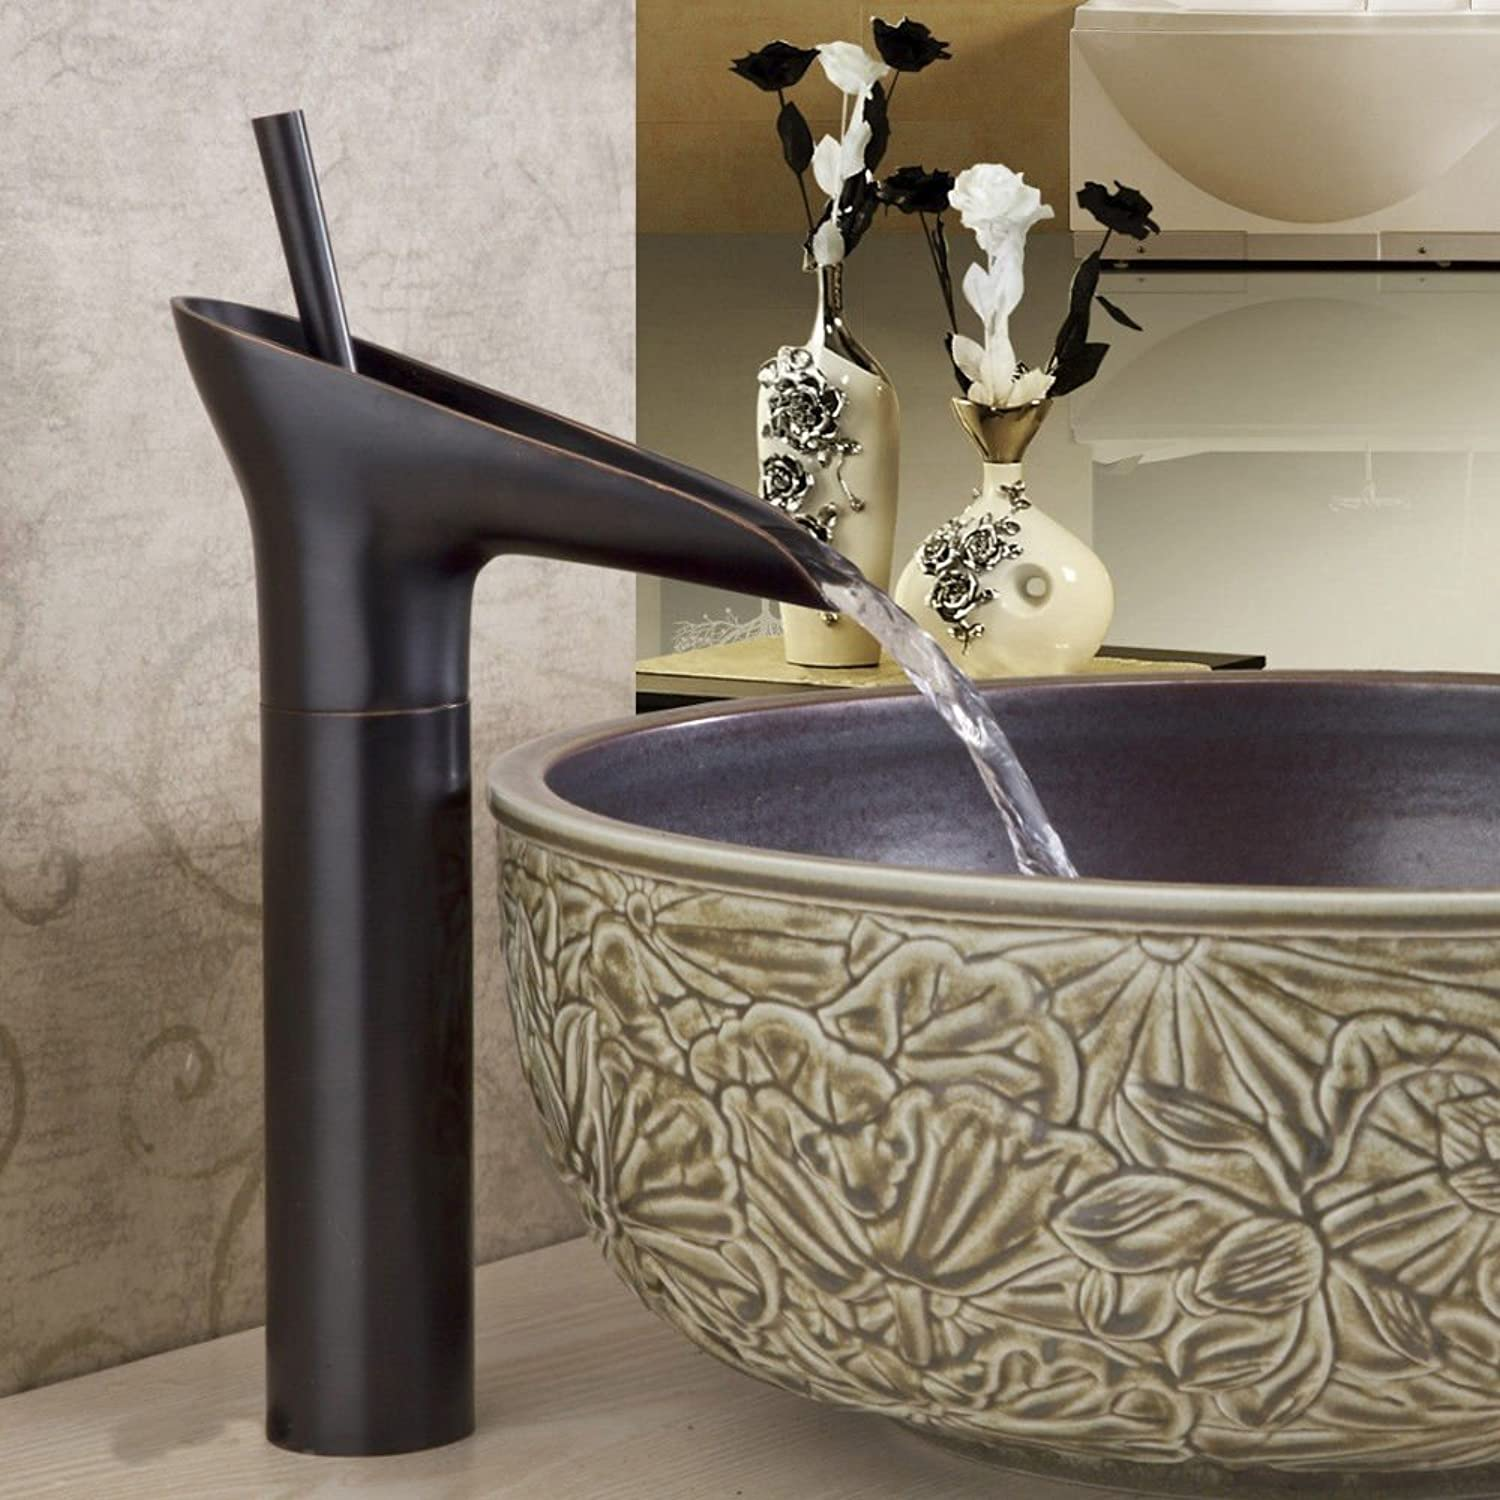 Lpophy Bathroom Sink Mixer Taps Faucet Bath Waterfall Cold and Hot Water Tap for Washroom Bathroom and Kitchen Copper Black Antique color Hot and Cold Water